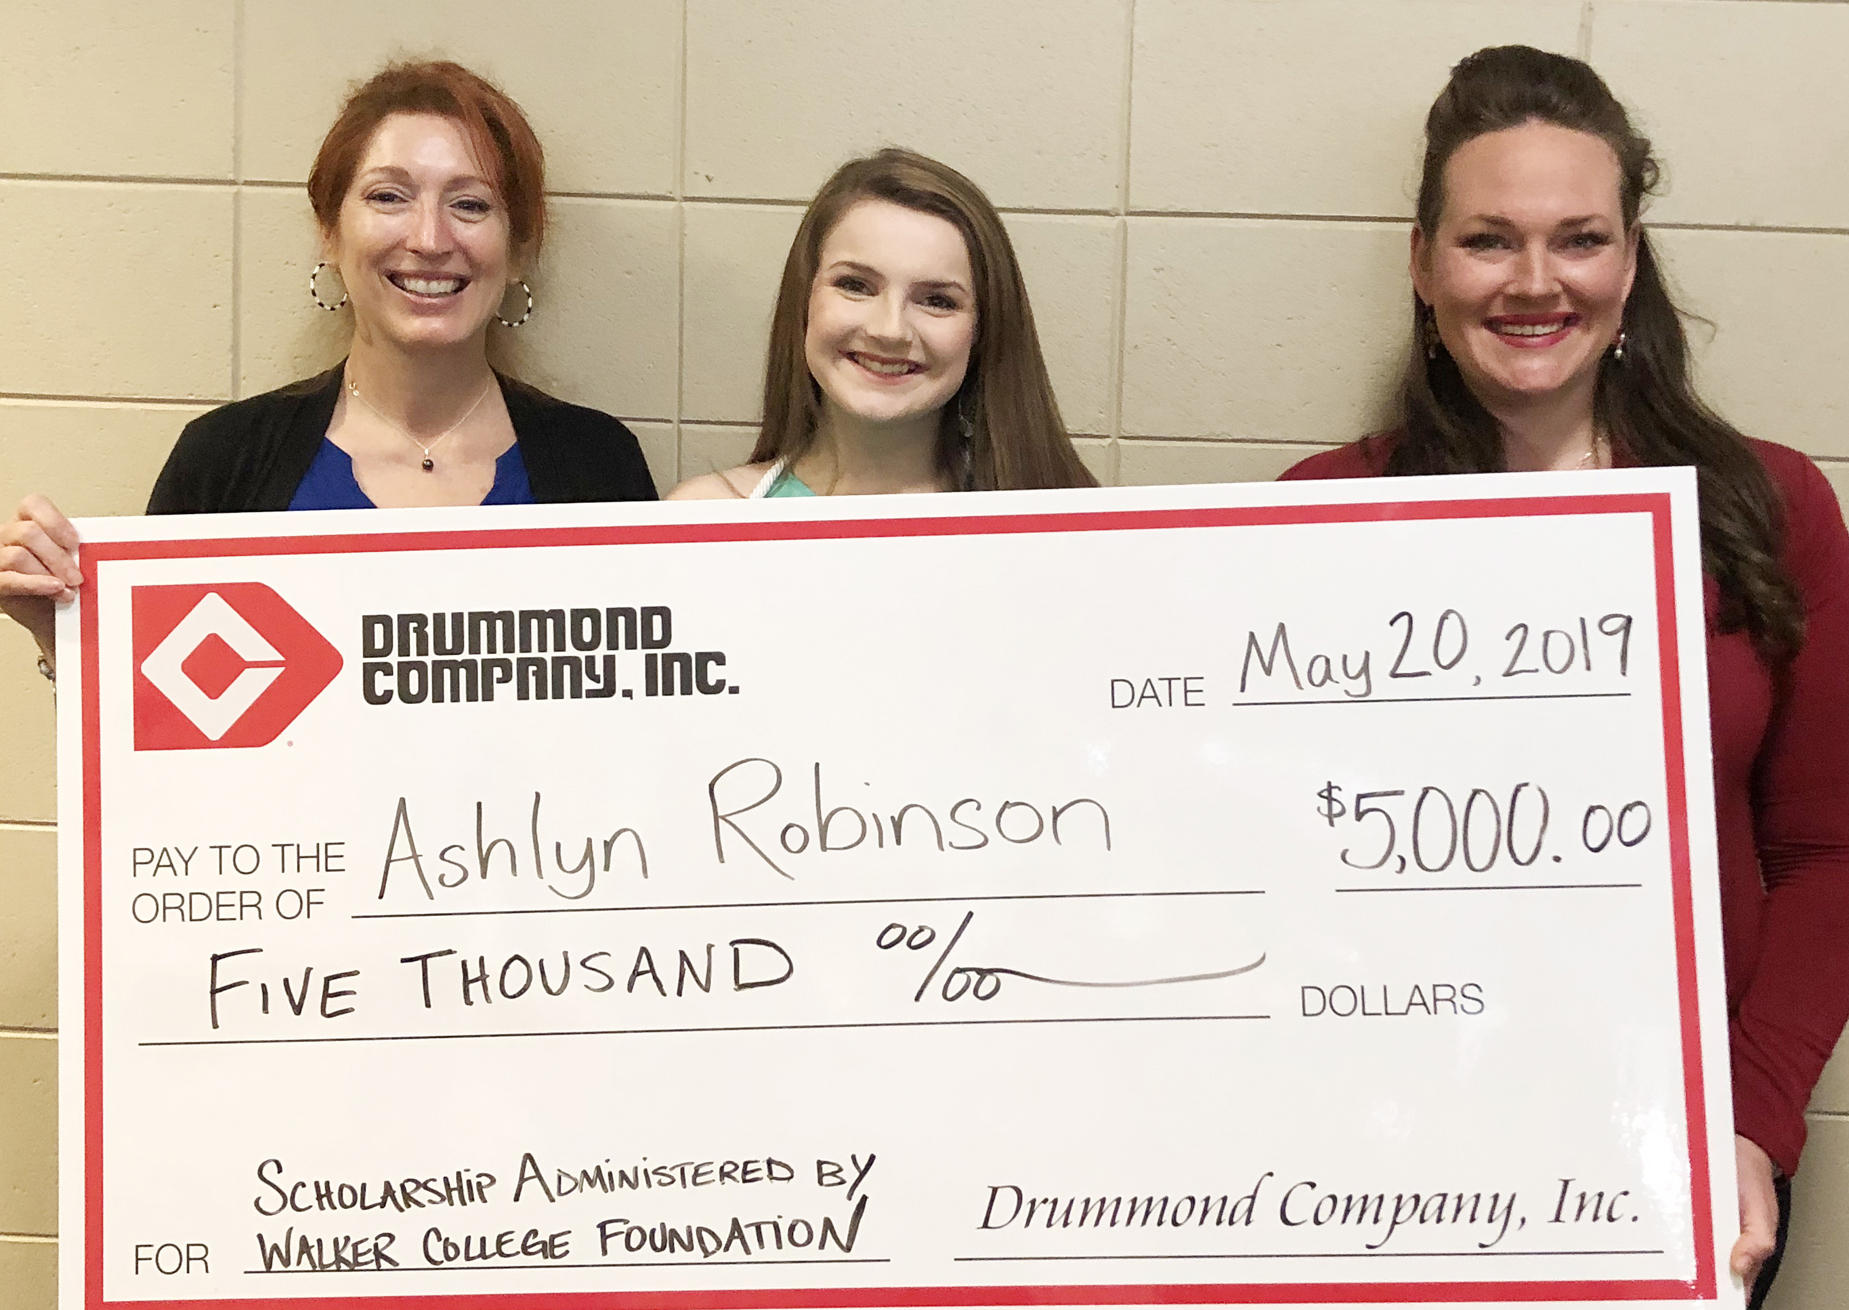 Ashlyn Robinson (ctr) is awarded the Drummond Company scholarship by Holly and Krystal at the Pinson Valley High School senior honors program.